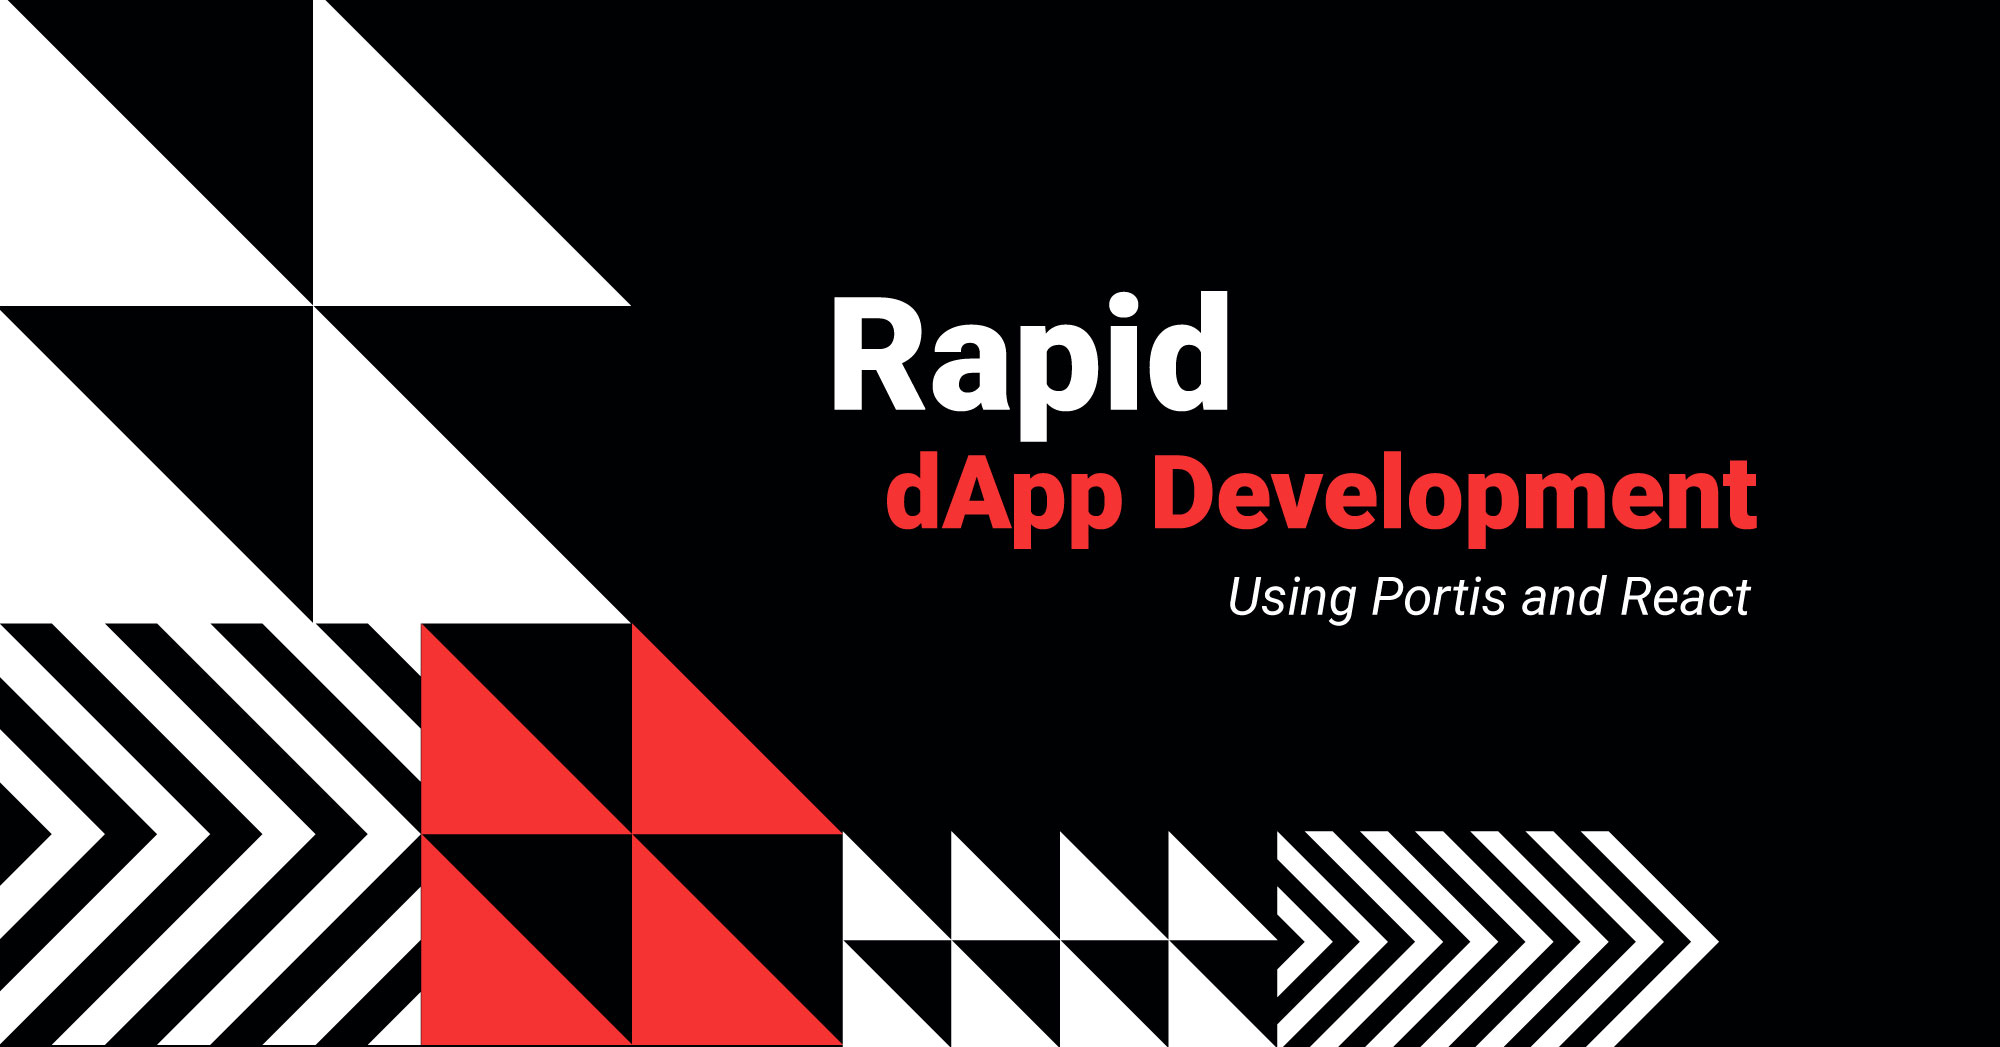 Rapid DApp Development using Portis and React